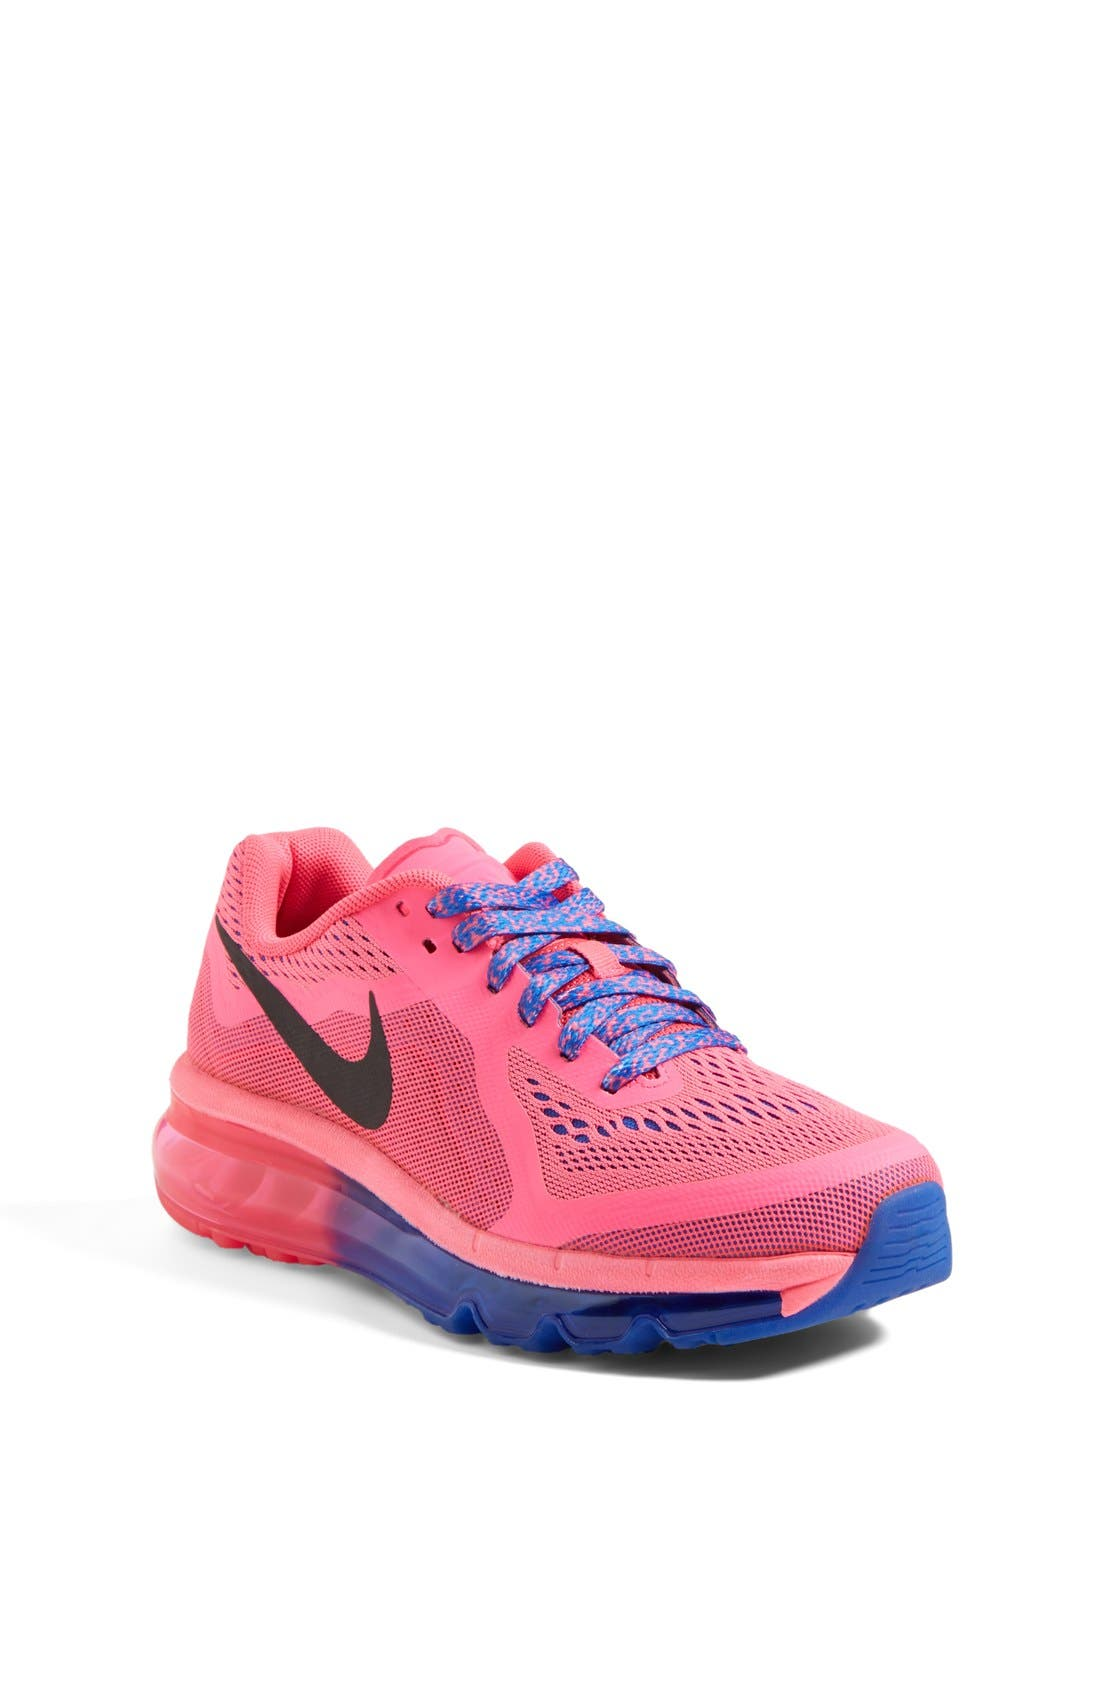 Main Image - Nike 'Air Max 2014' Running Shoe (Big Kid) (Online Only)